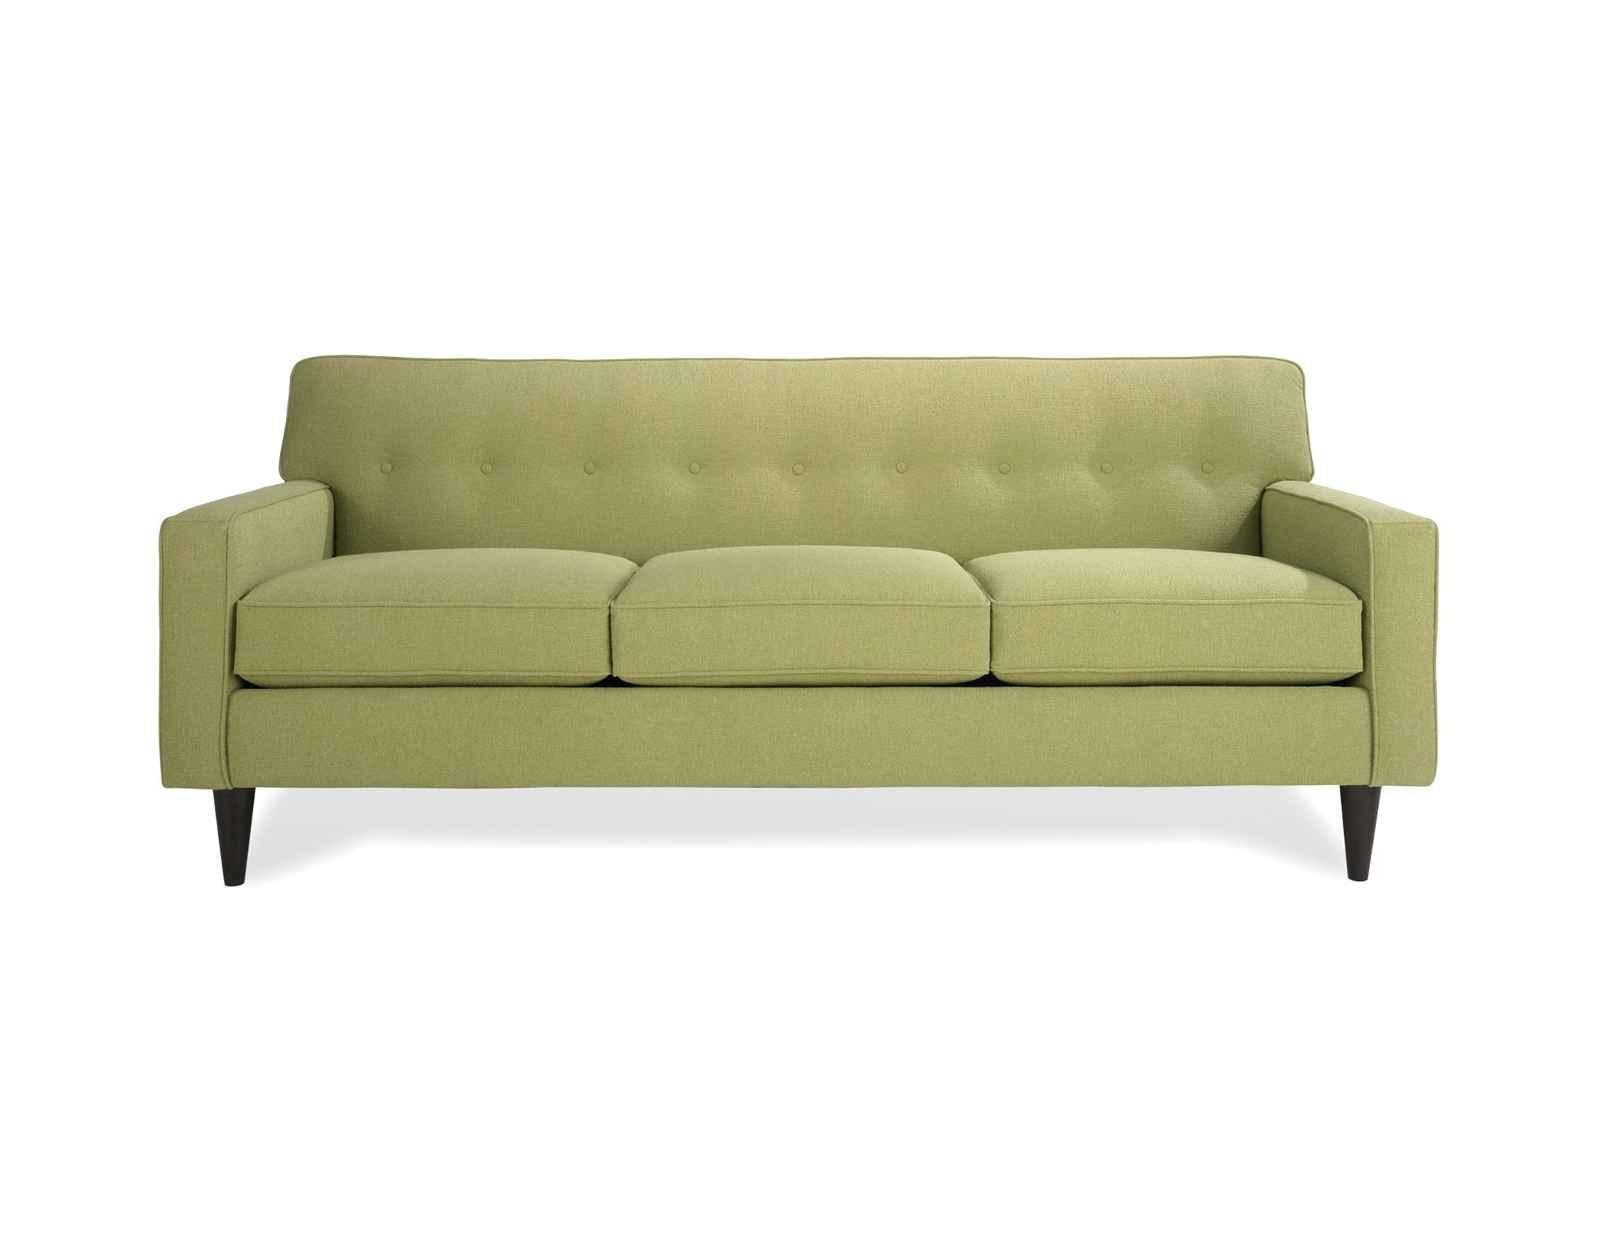 Sofa Bed Cheap Price